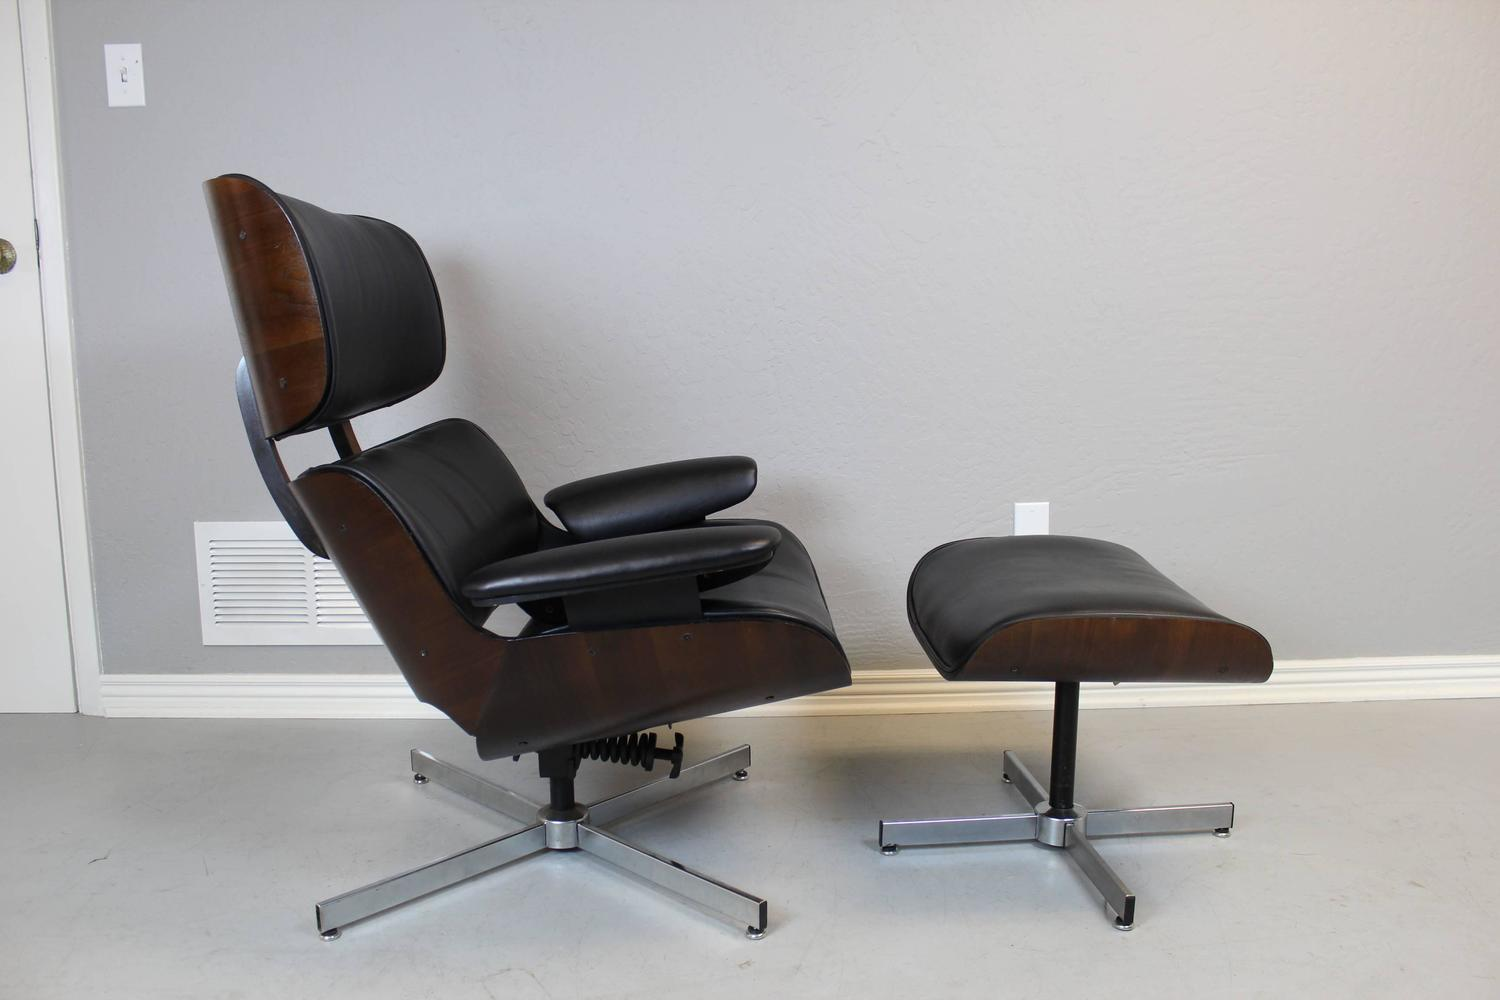 Plycraft lounge chair restoration plycraft eames lounge chair restoration previous - Selig z chair reproduction ...